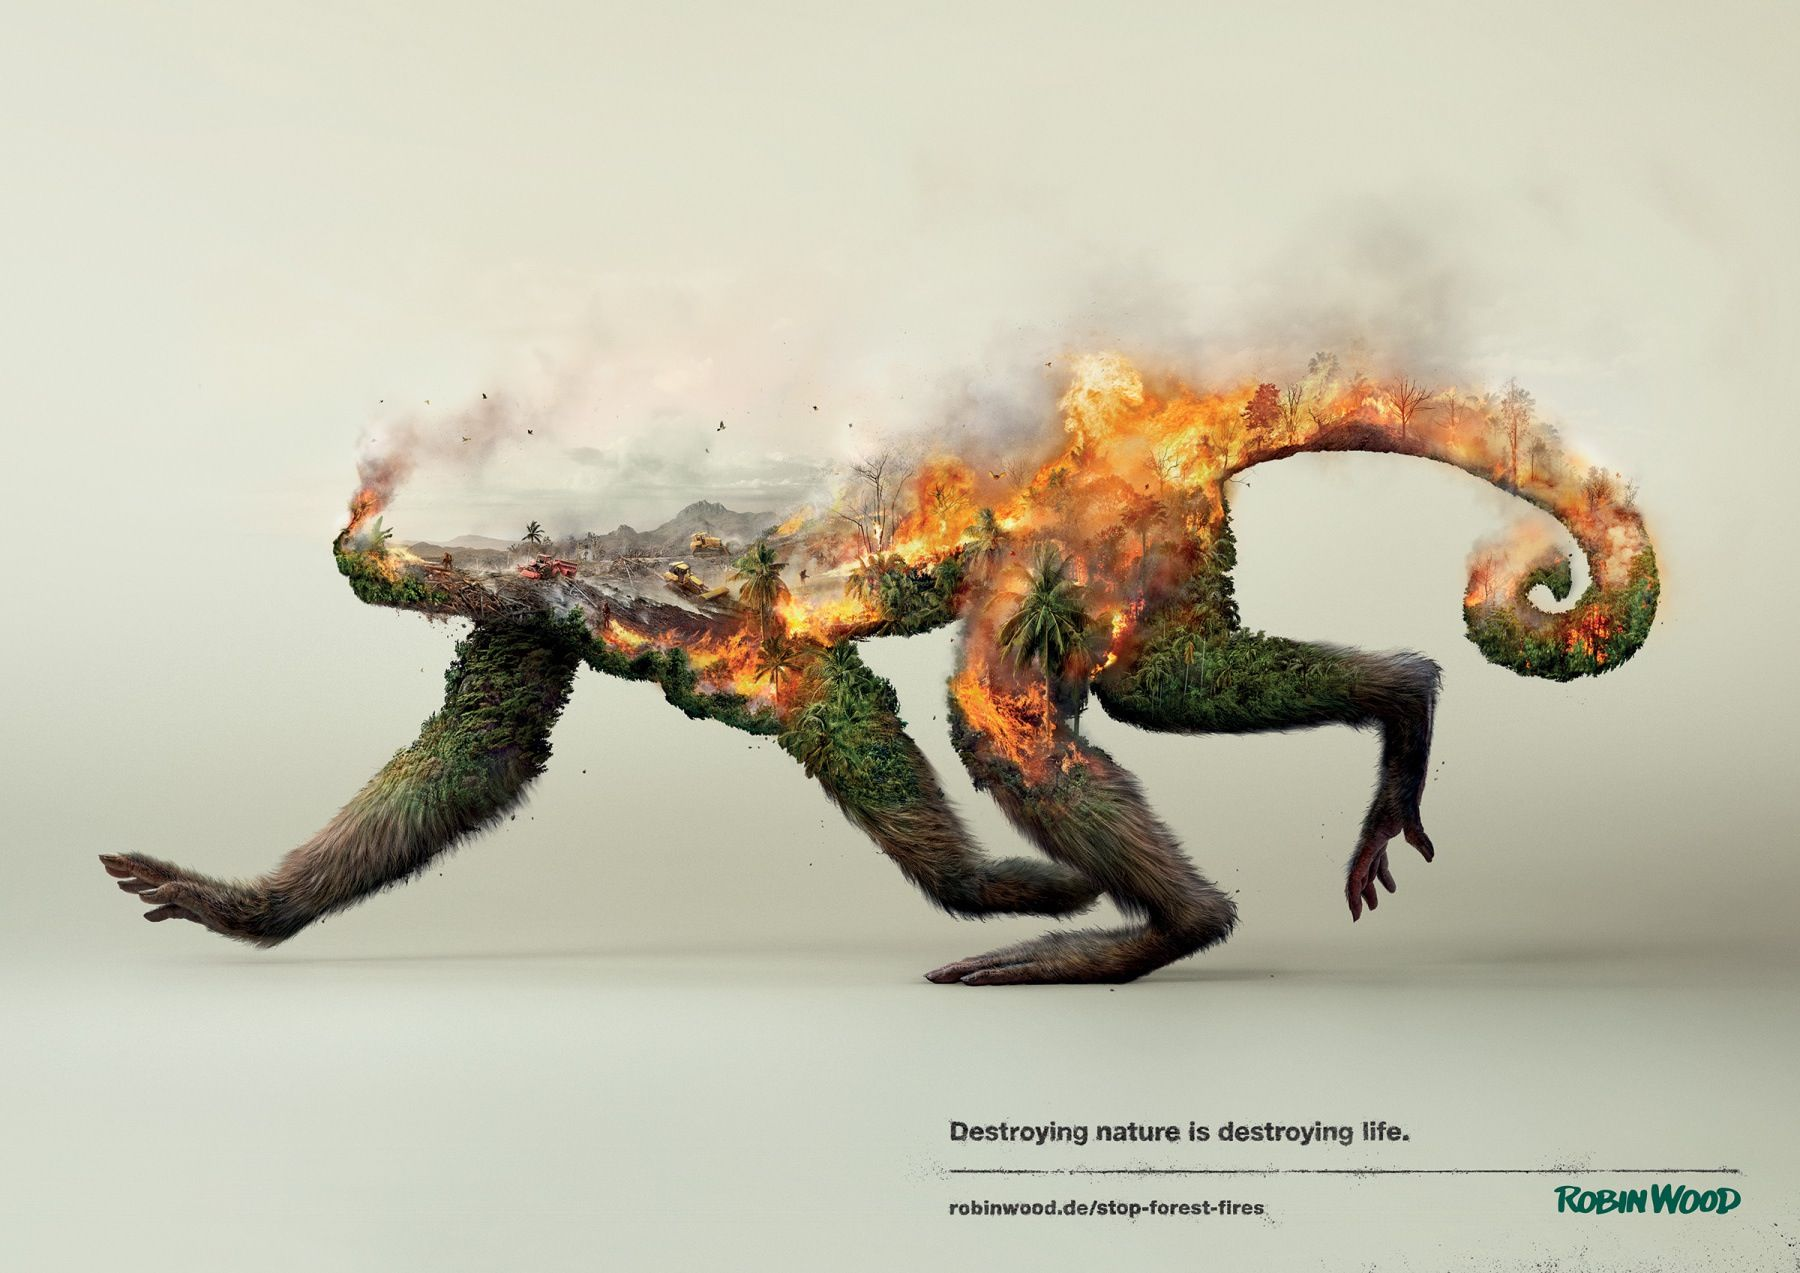 Adeevee Robin Wood Destroying Nature Is Destroying Life - Powerful animation shows how society destroys our creativity